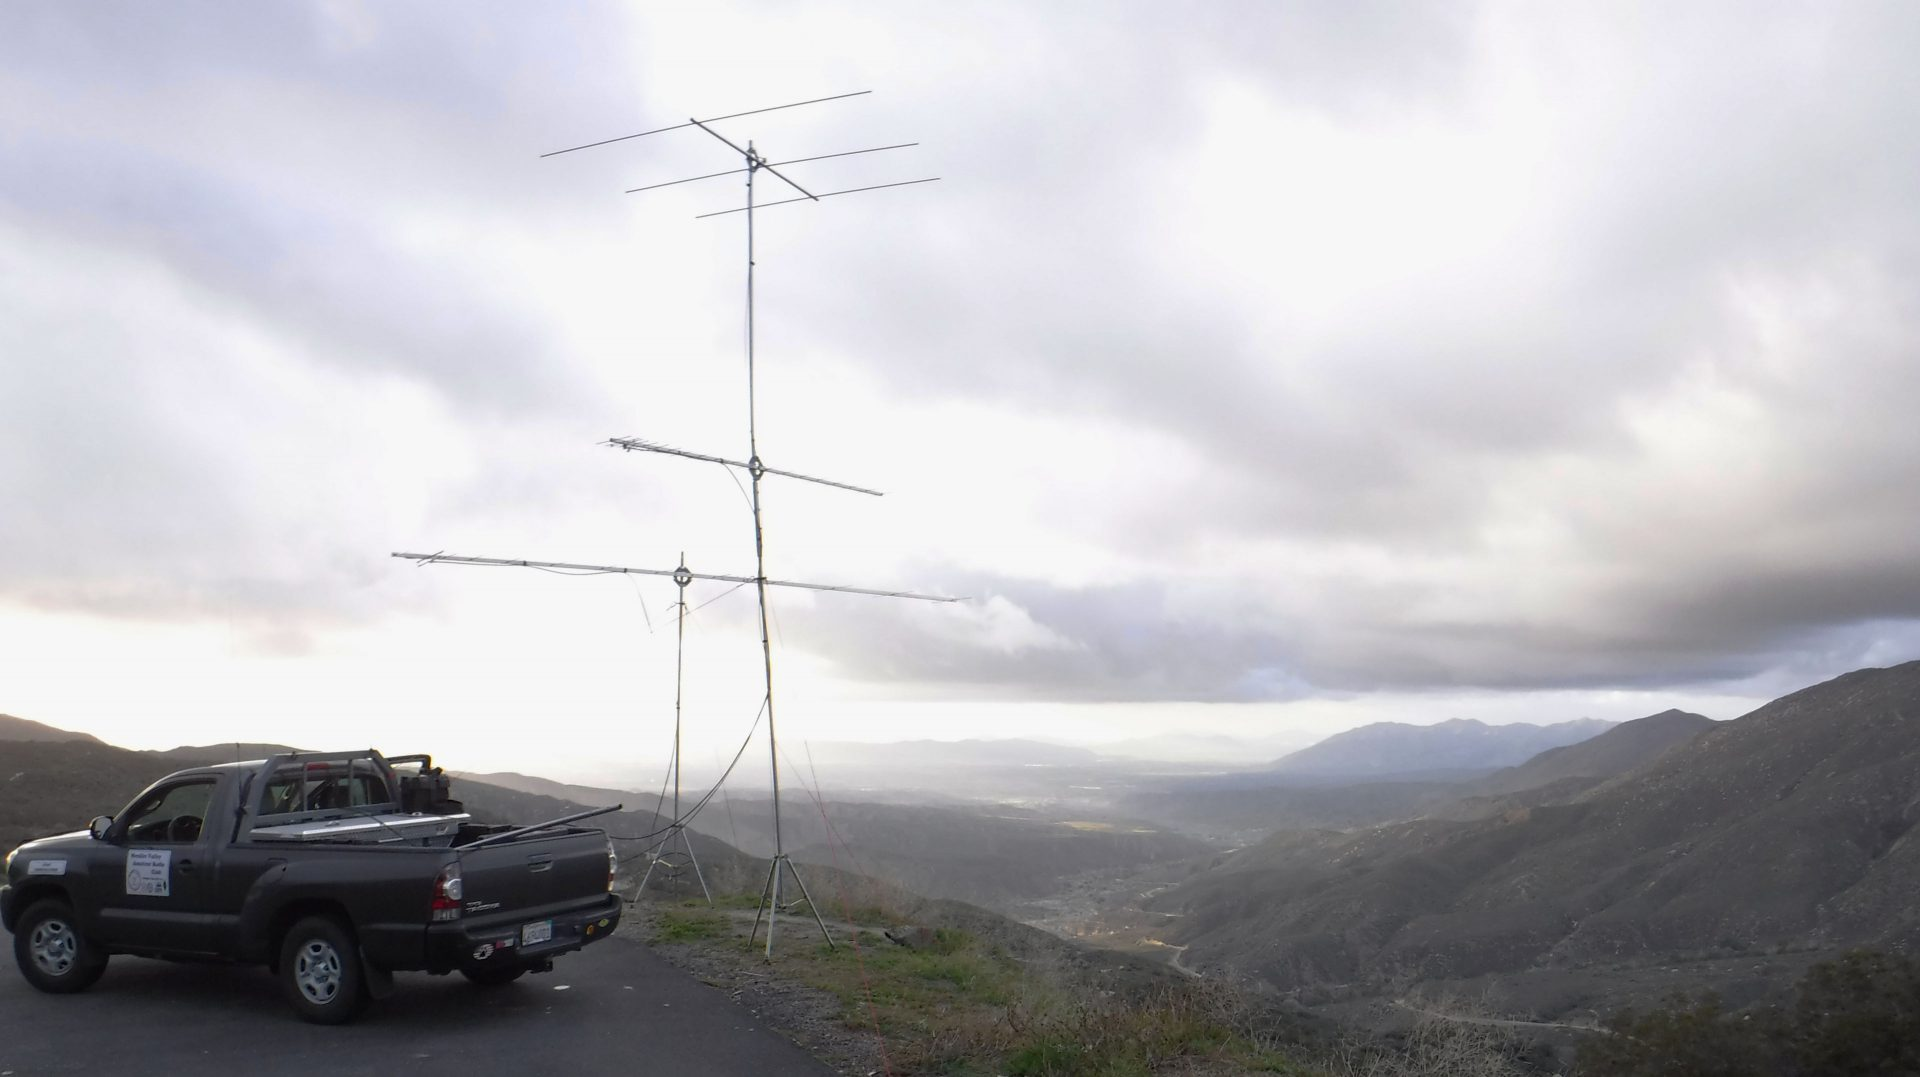 Contest station looking over the Inland Empire